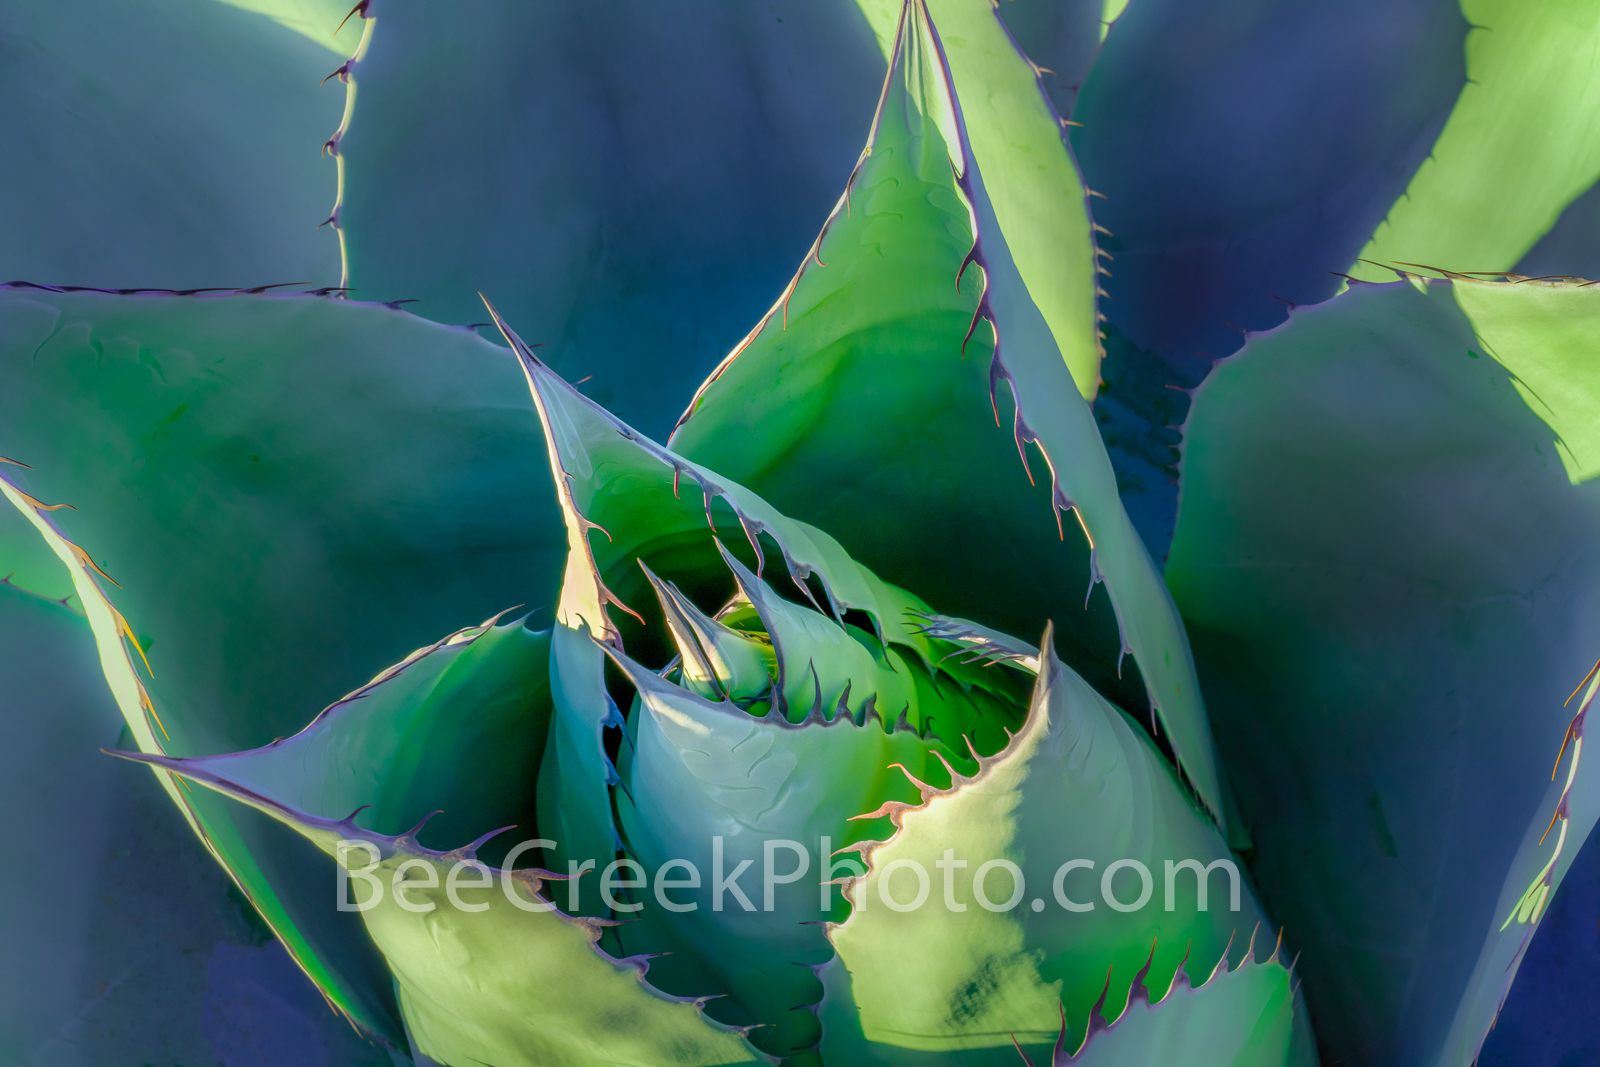 Desert Agave Art - A Desert Agave close up capture.  We love our century or agave plants regardless of what you call them they...